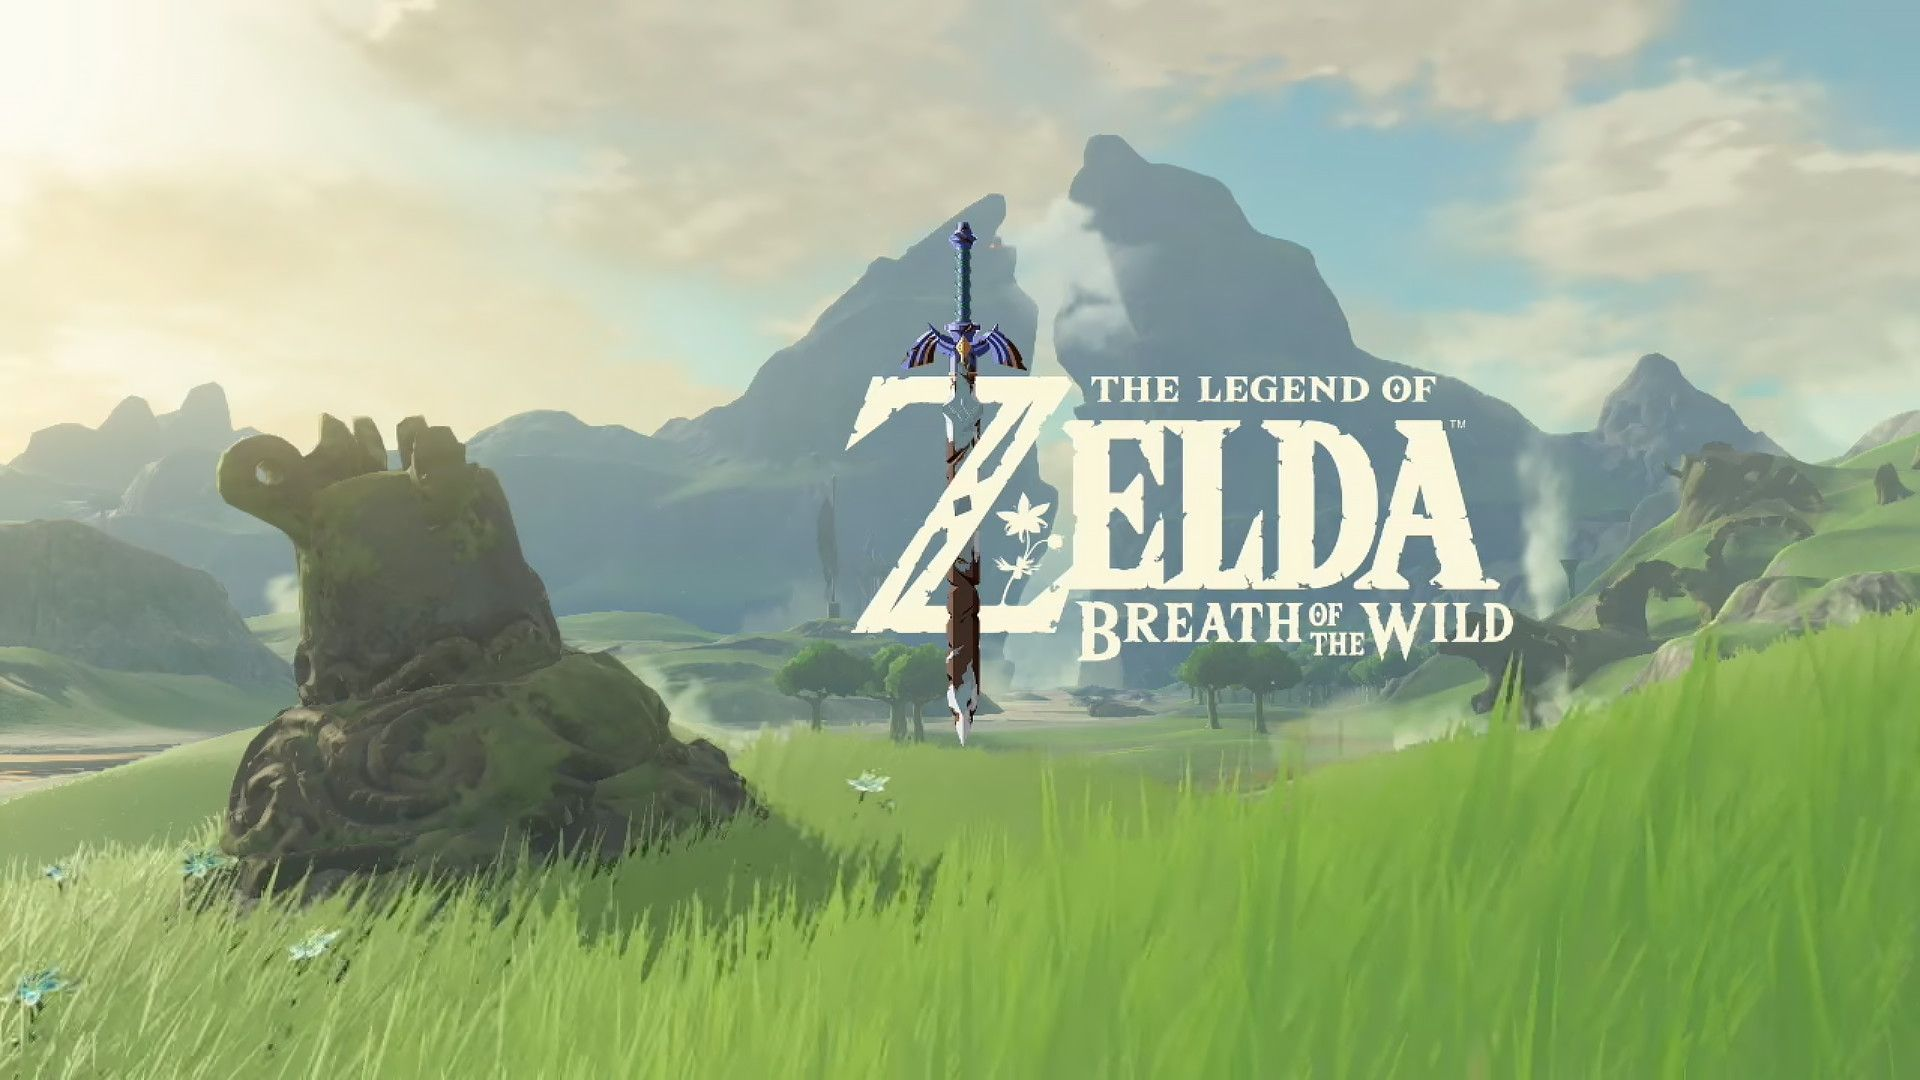 The Legend Of Zelda Breath Of The Wild Hq Backgrounds Zelda